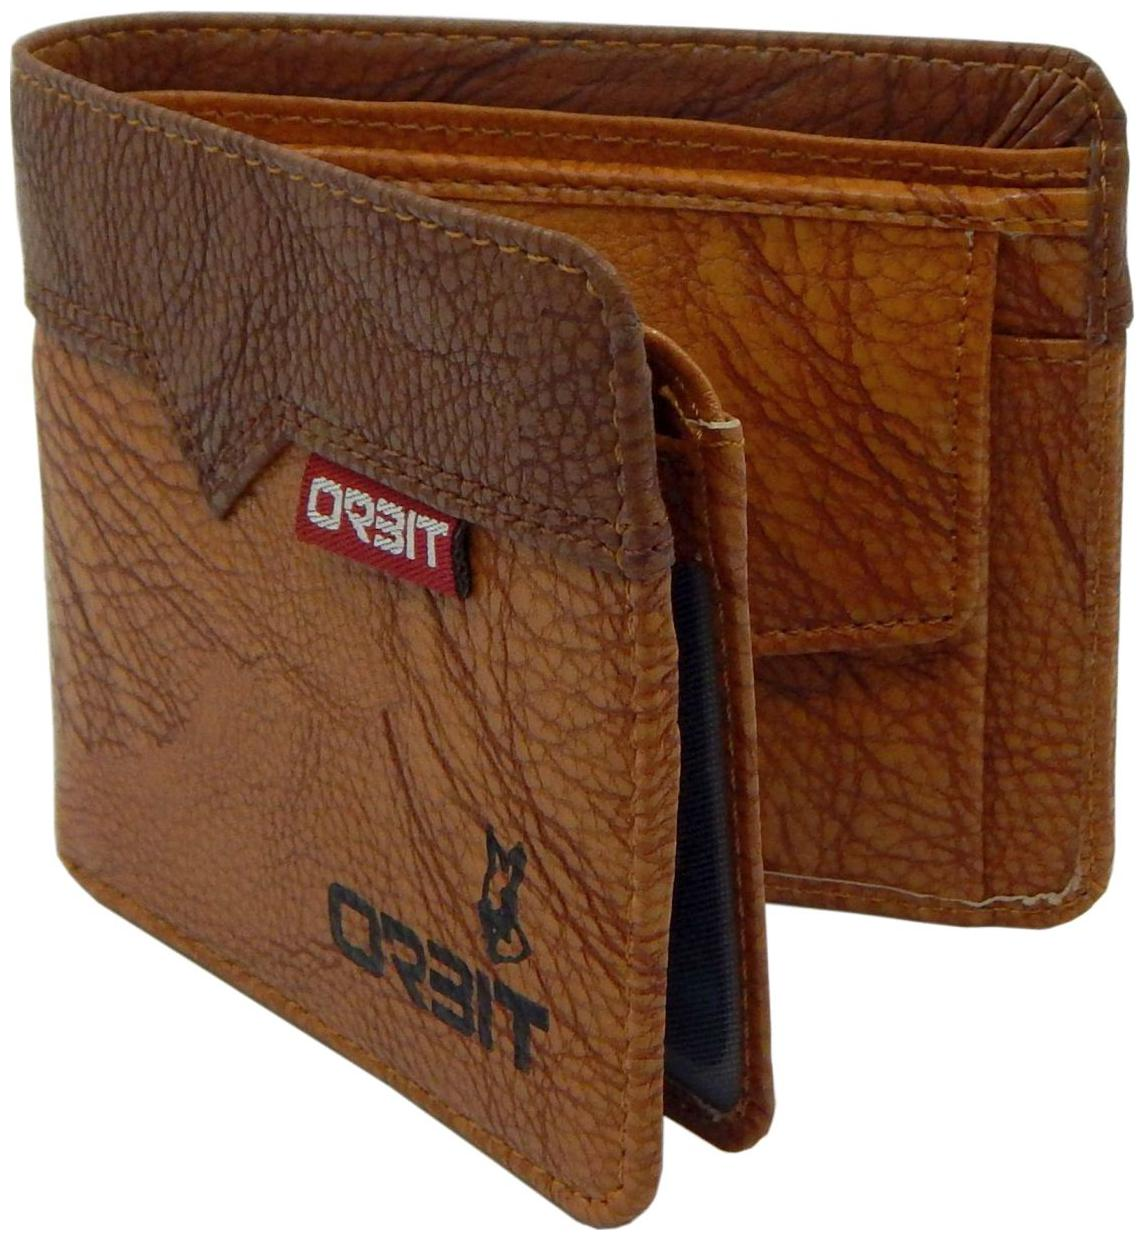 Orbit Men Brown Leather Tri Fold Wallet   Pack of 1   by Punarvasan